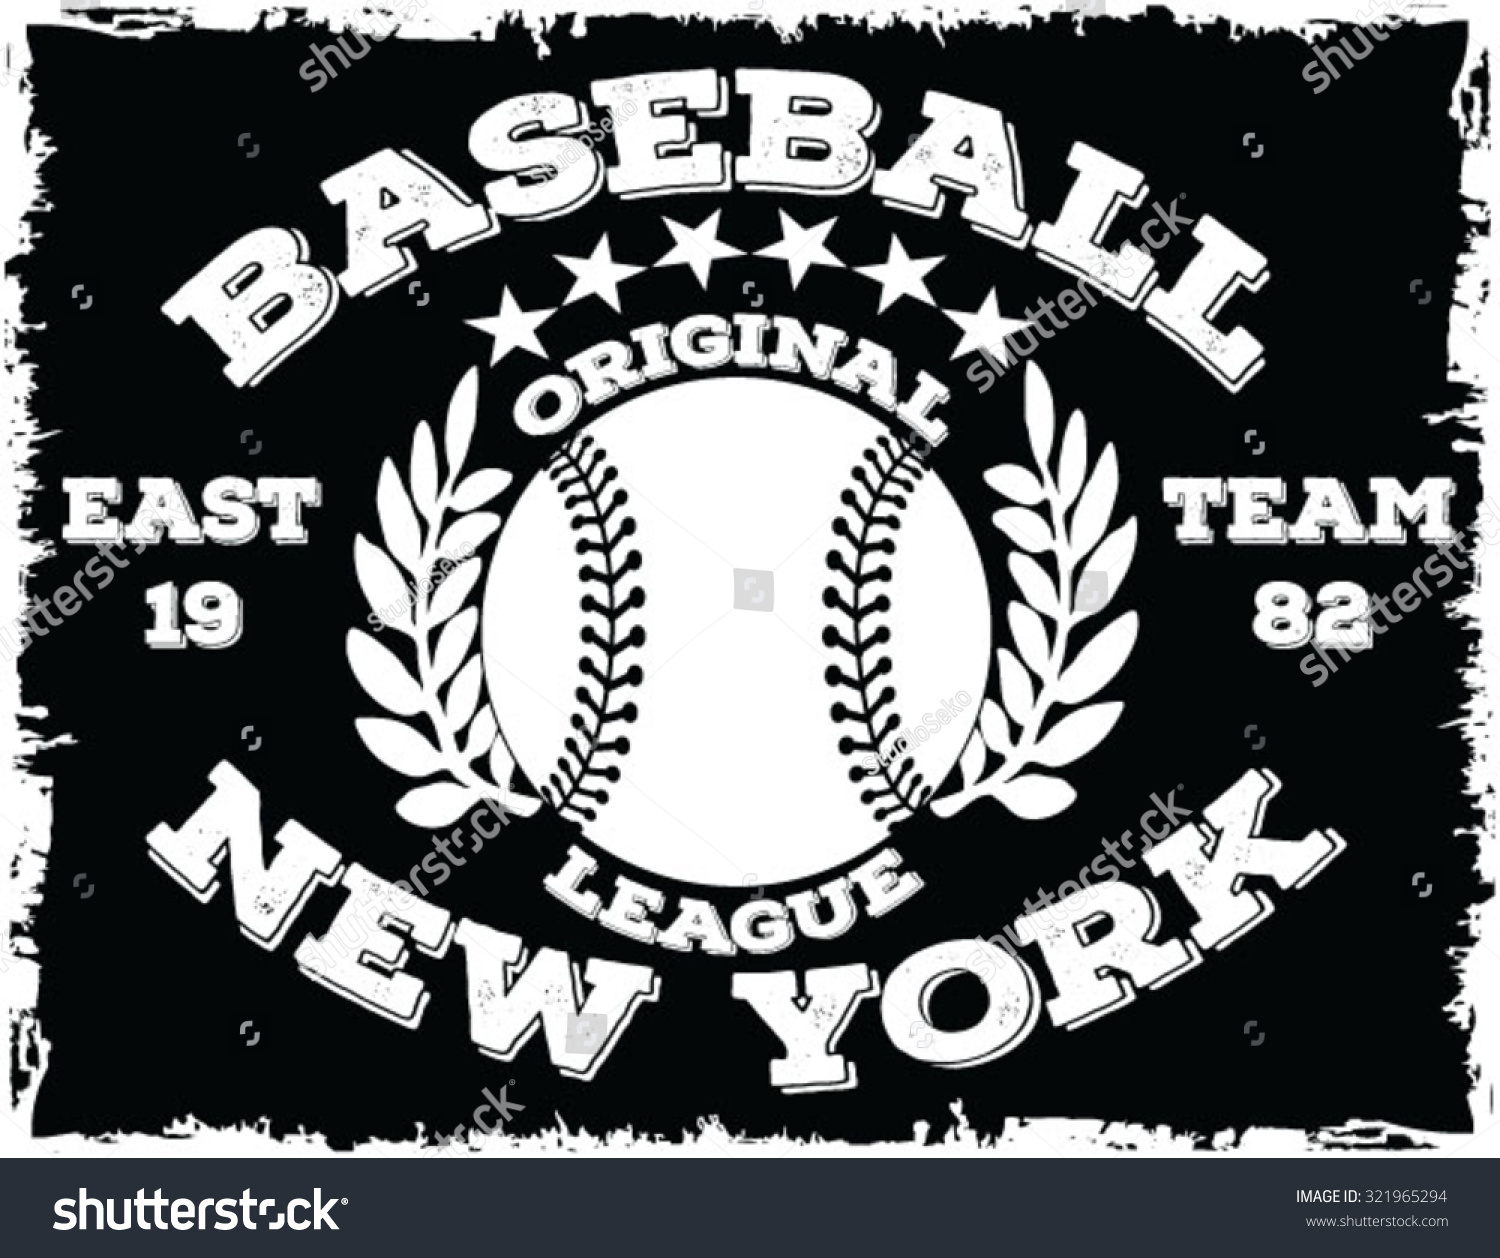 Baseball Tshirt Design Stock Vector 321965294 - Shutterstock